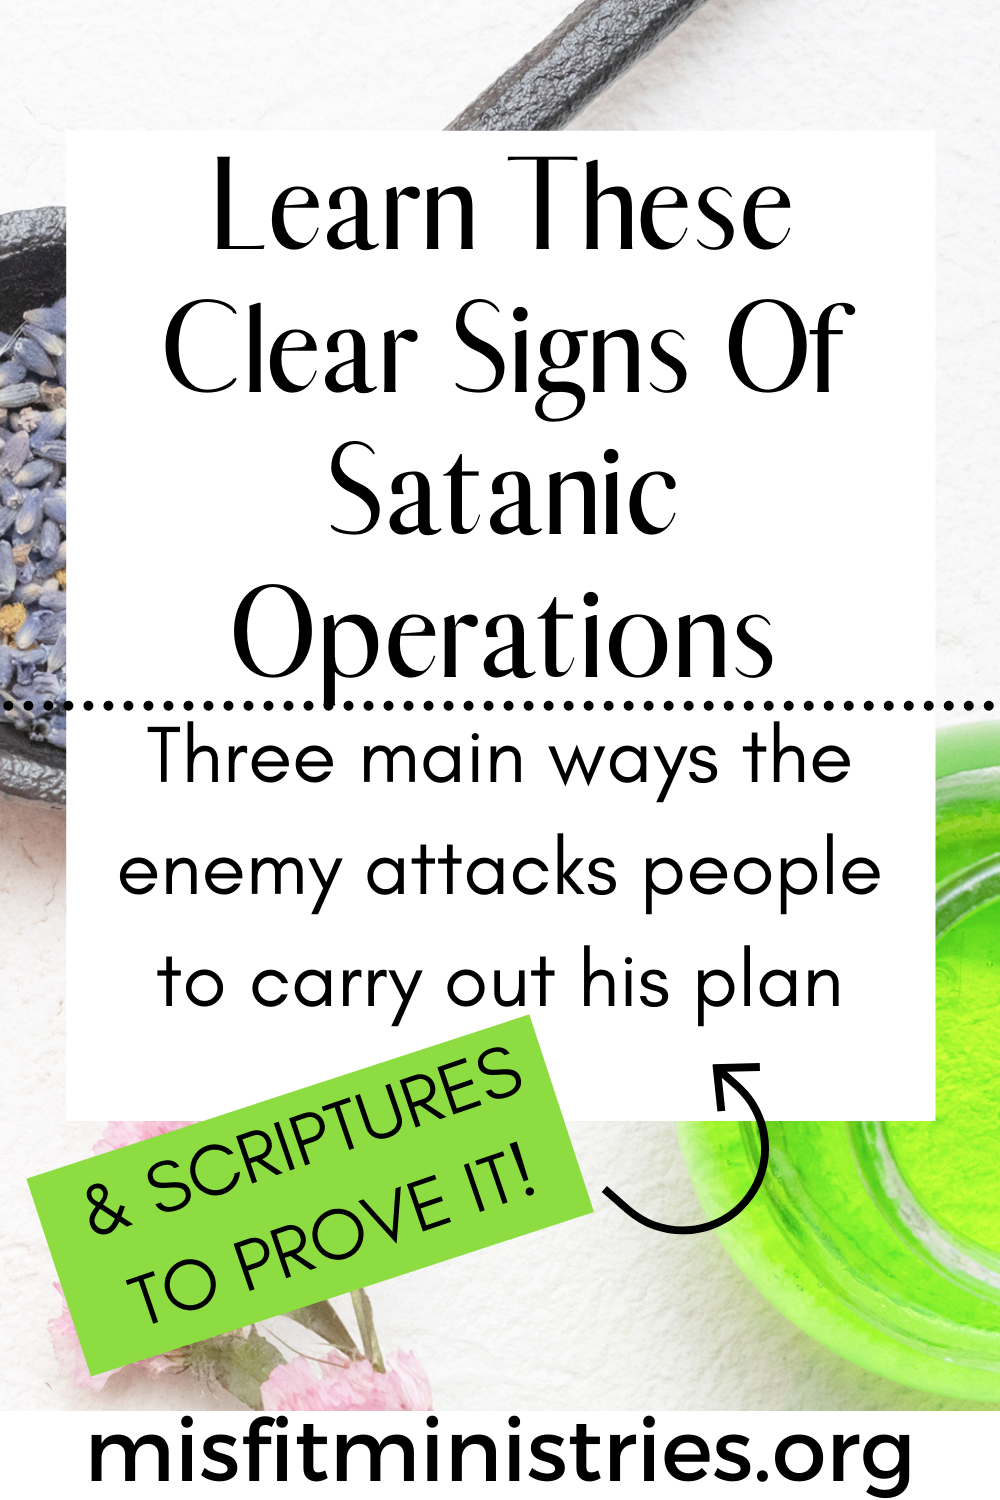 WAYS THE ENEMY ATTACKS PEOPLE